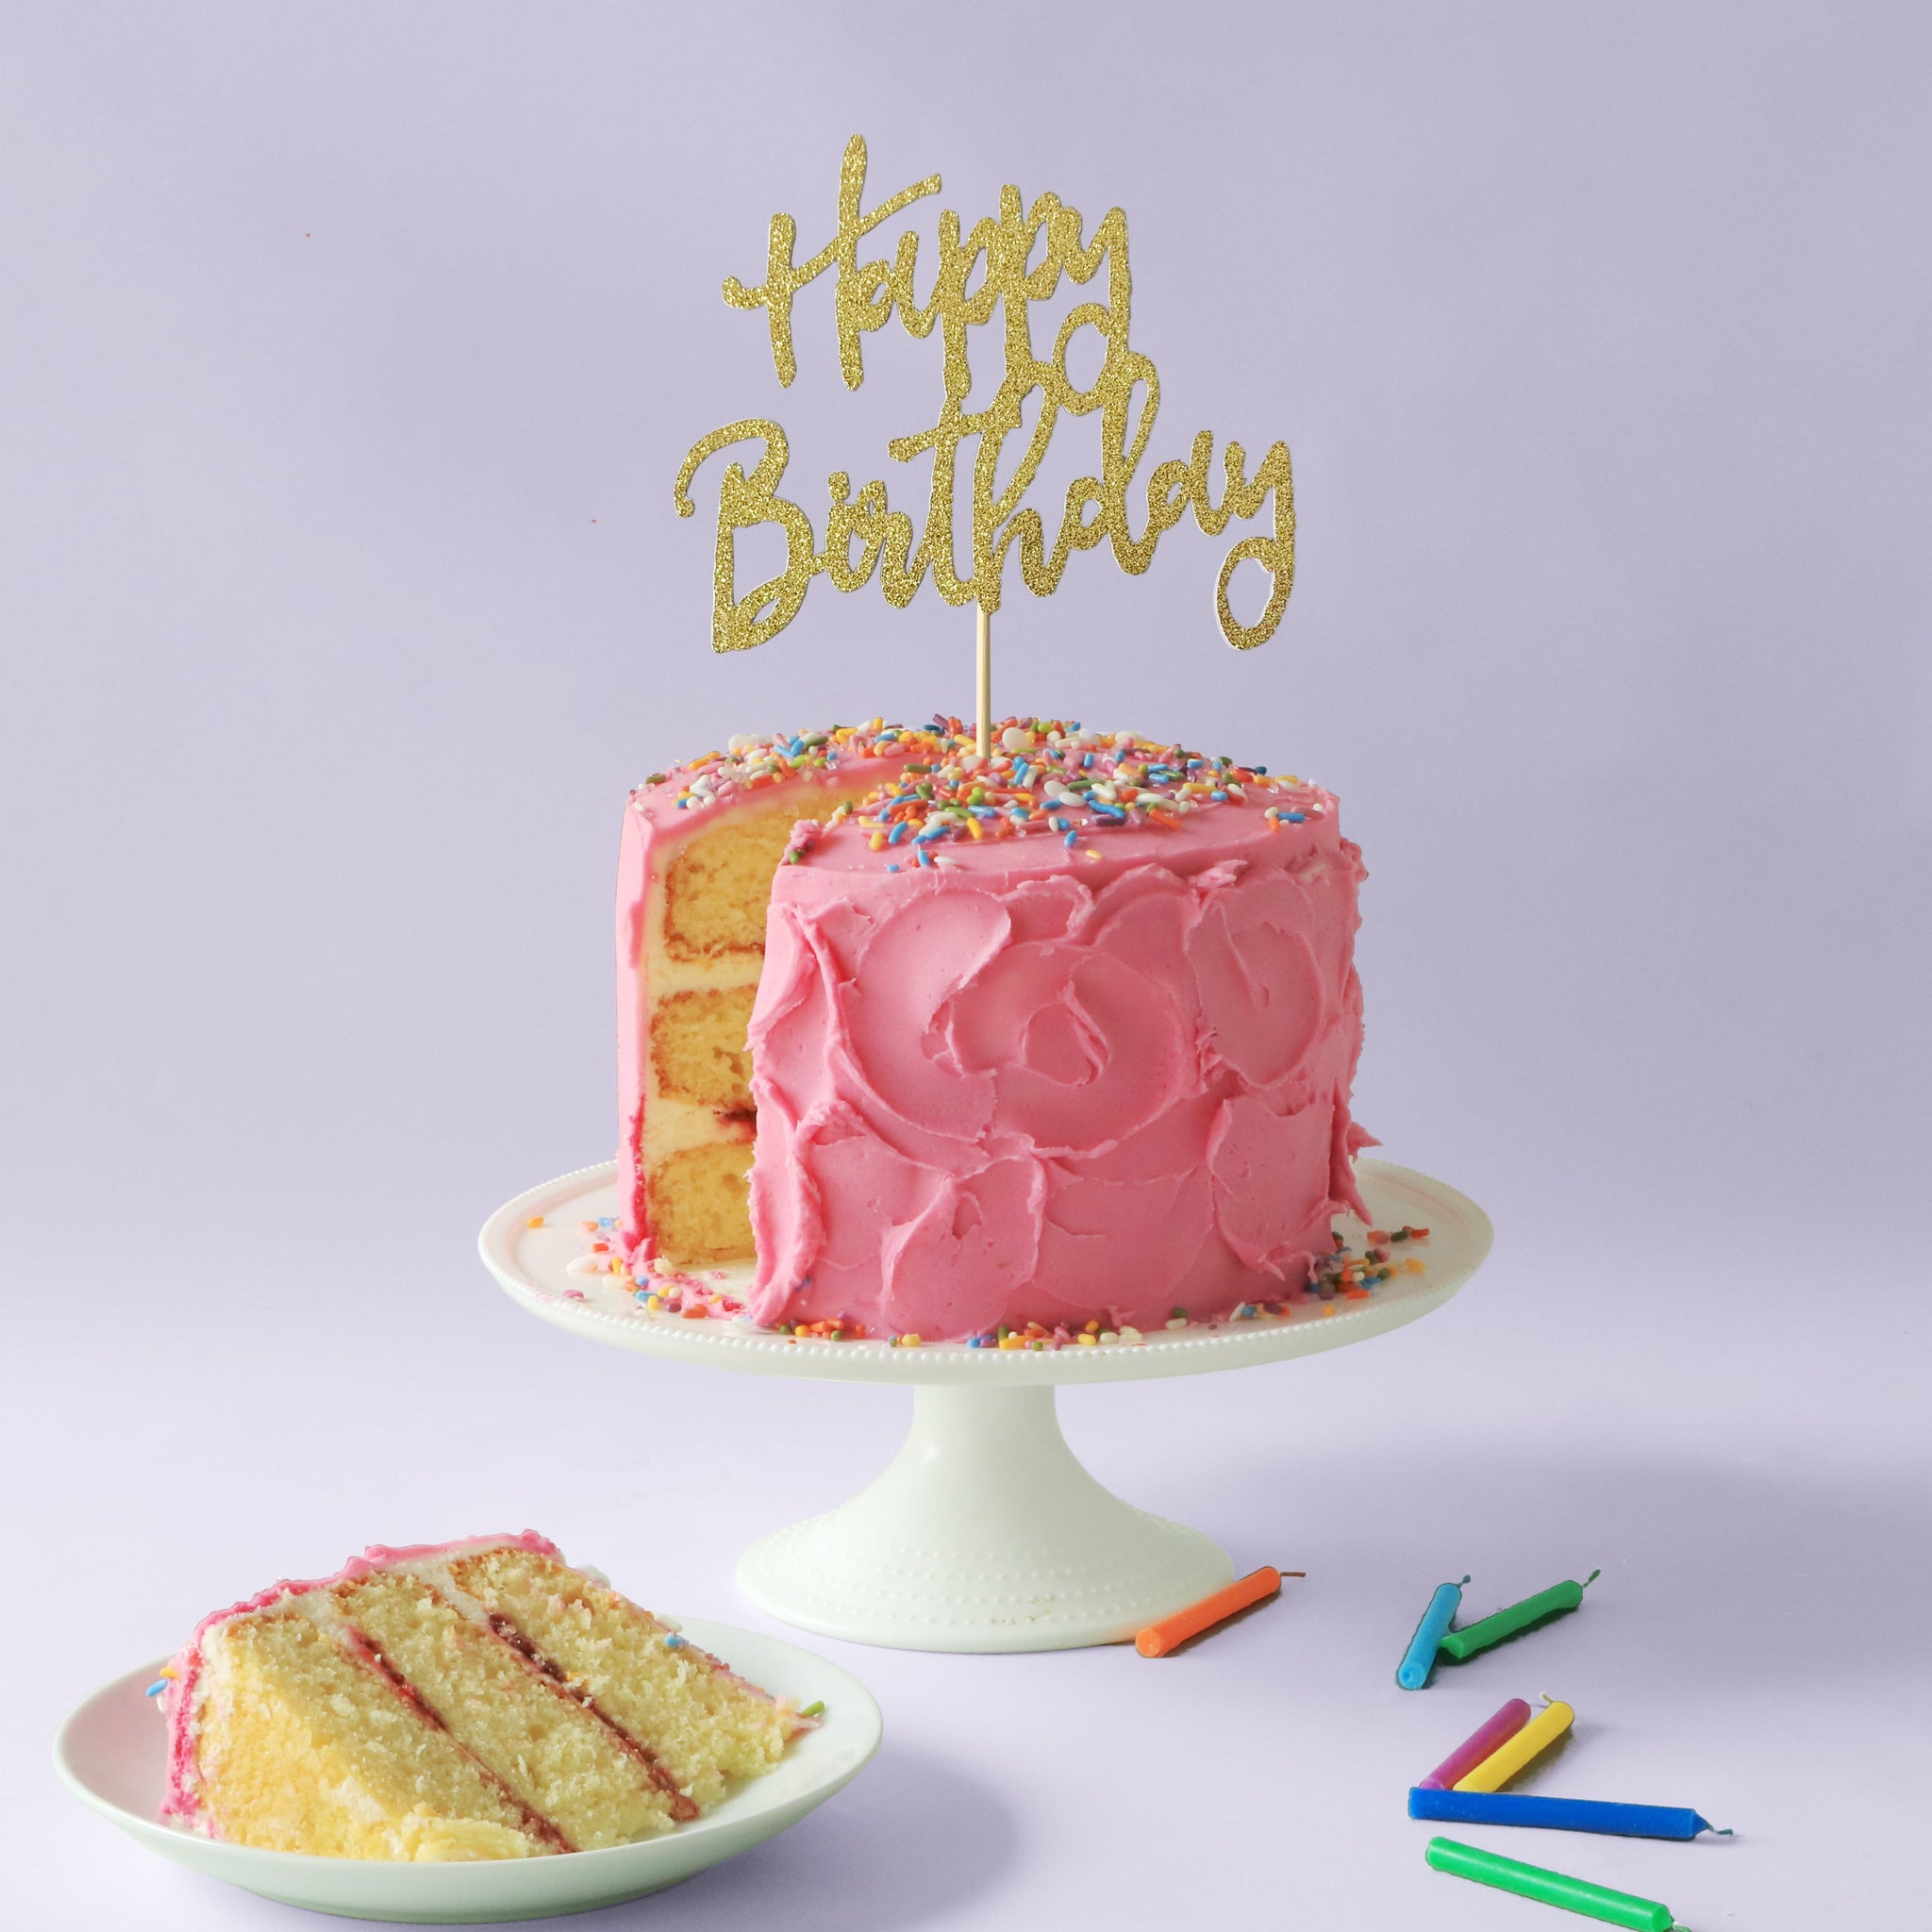 Happy Birthday Cake Topper Birthday Cake Kits Poppikit Poppikit